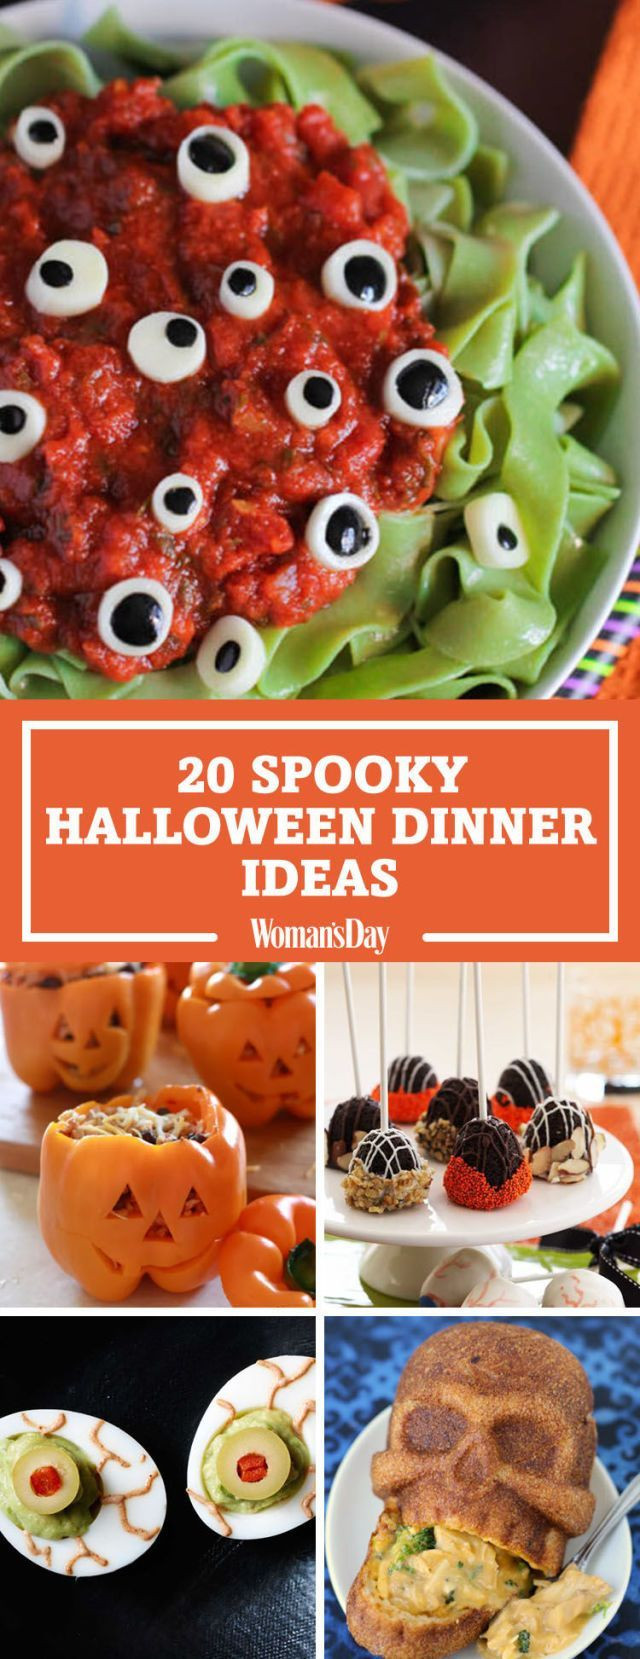 Fun Halloween Dinners  25 Spooky Halloween Dinner Ideas